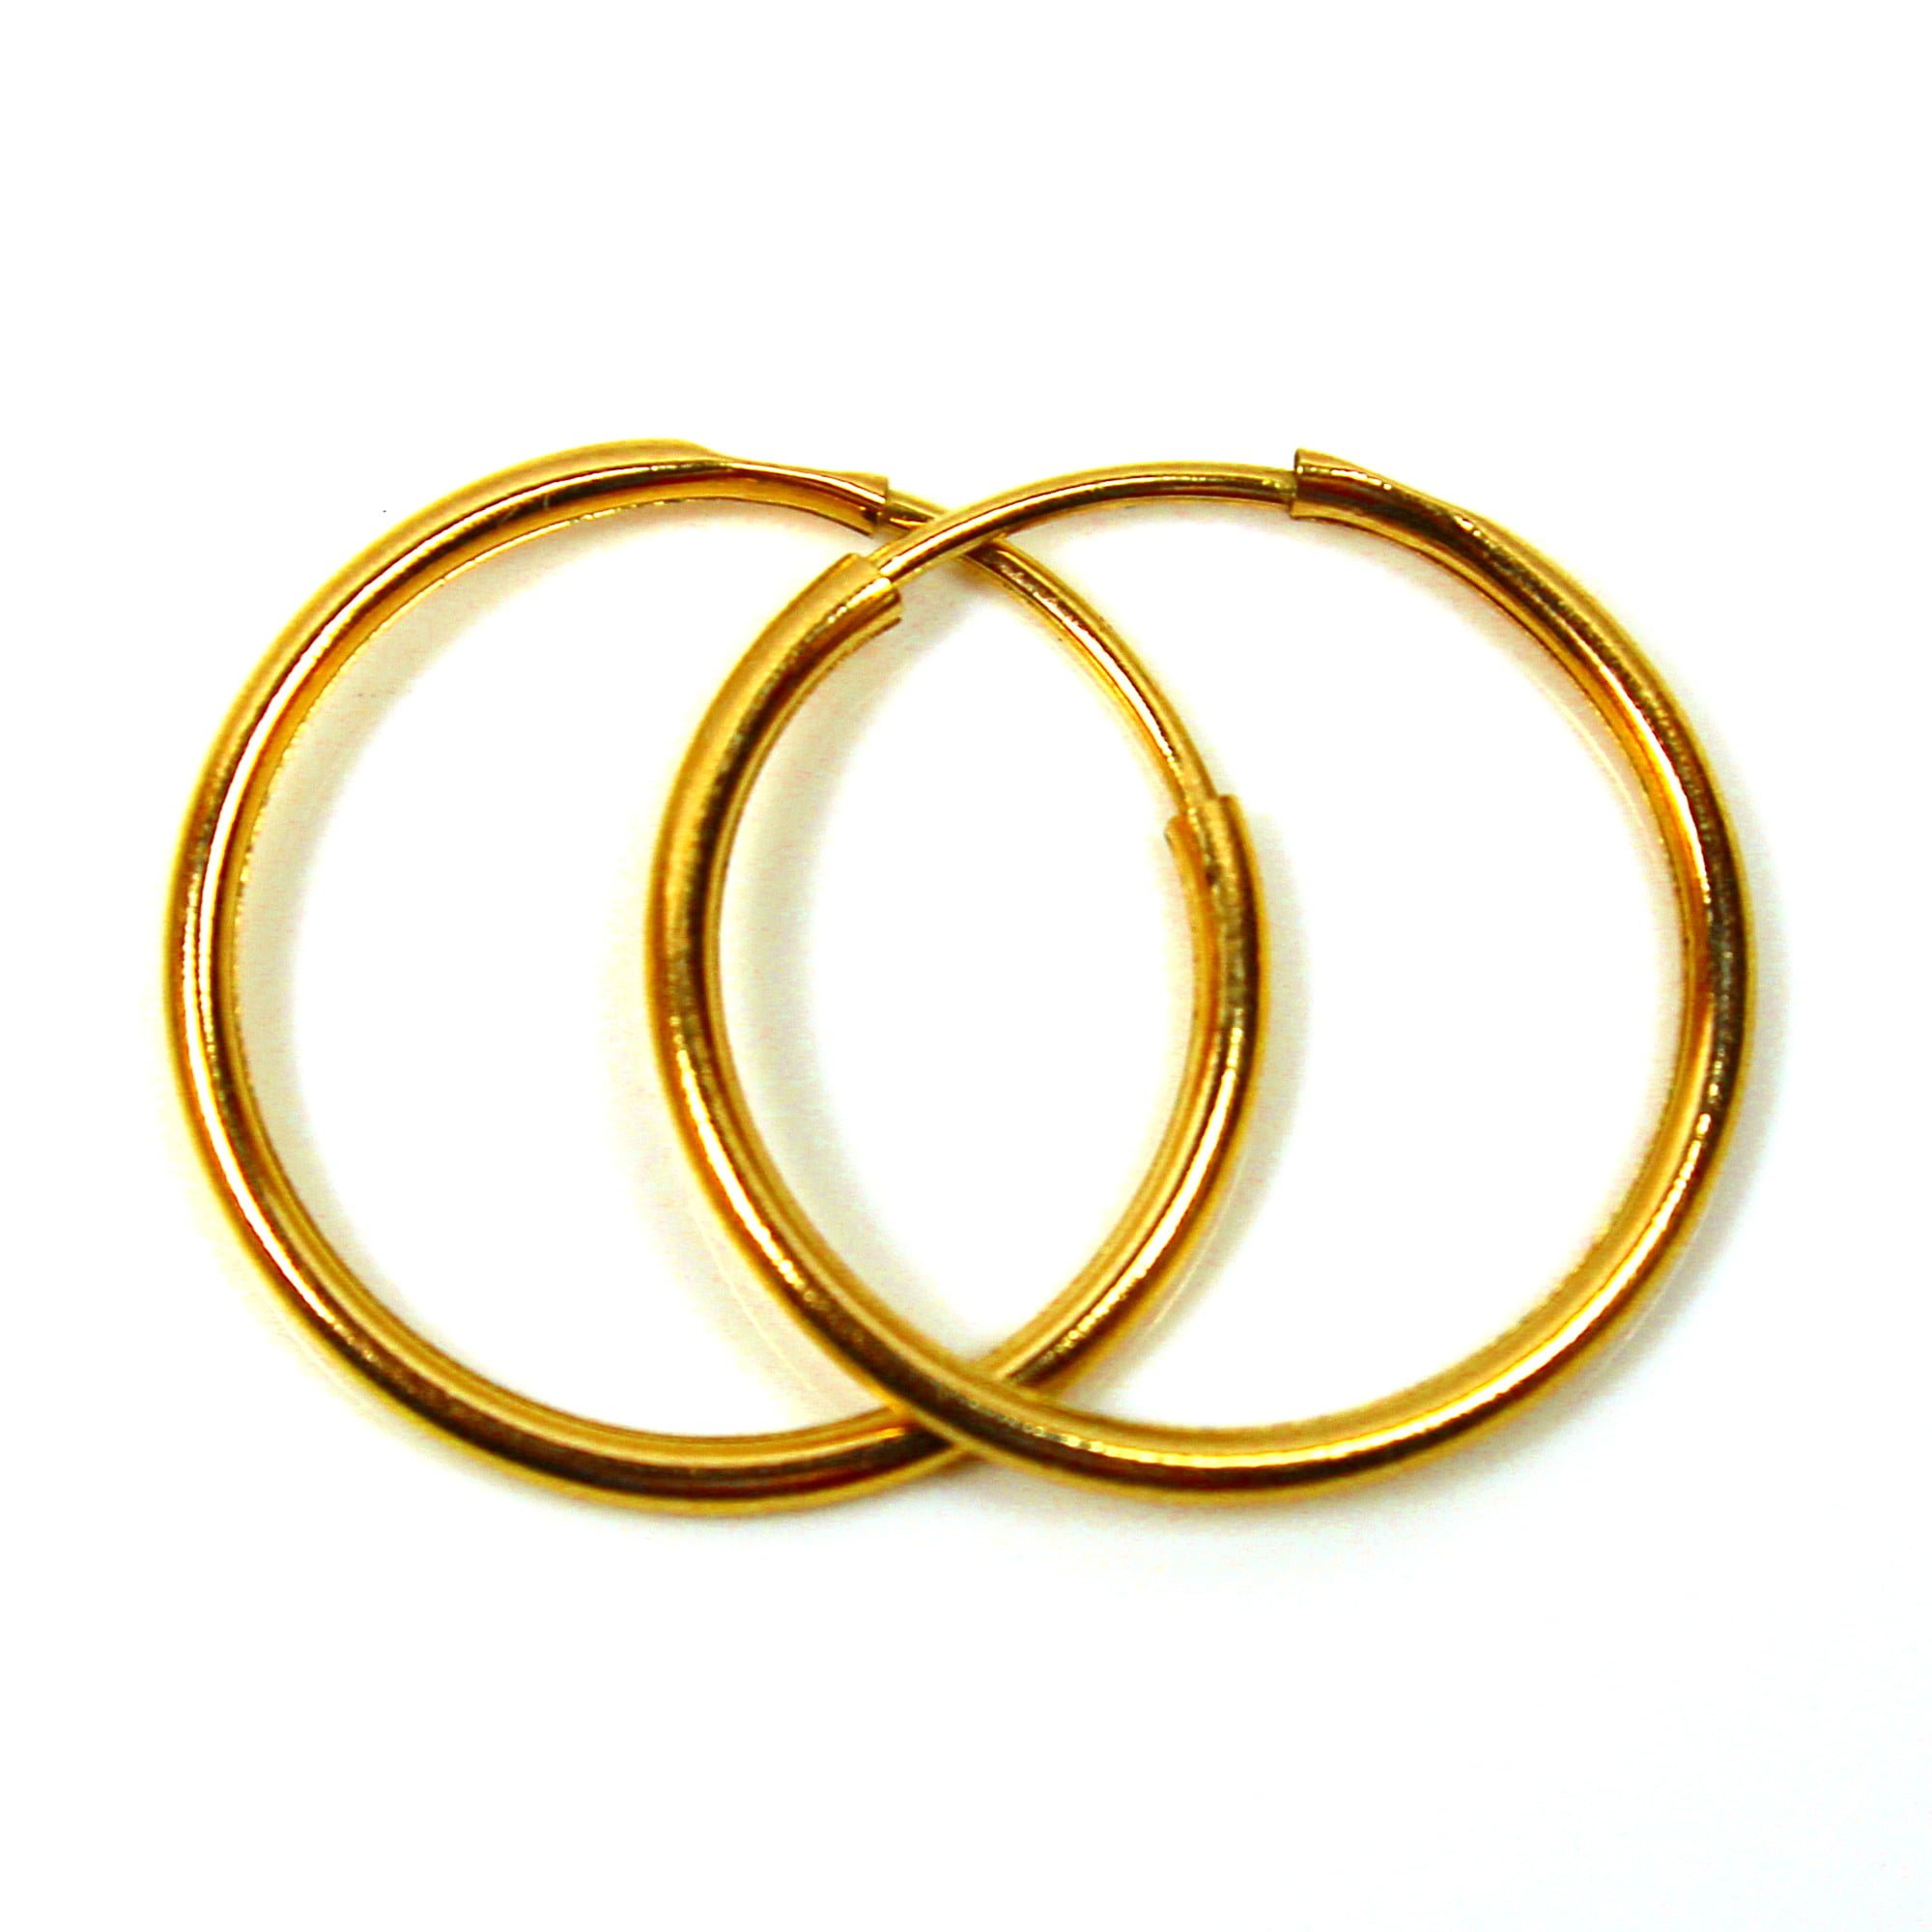 18mm 9ct gold hoop earrings